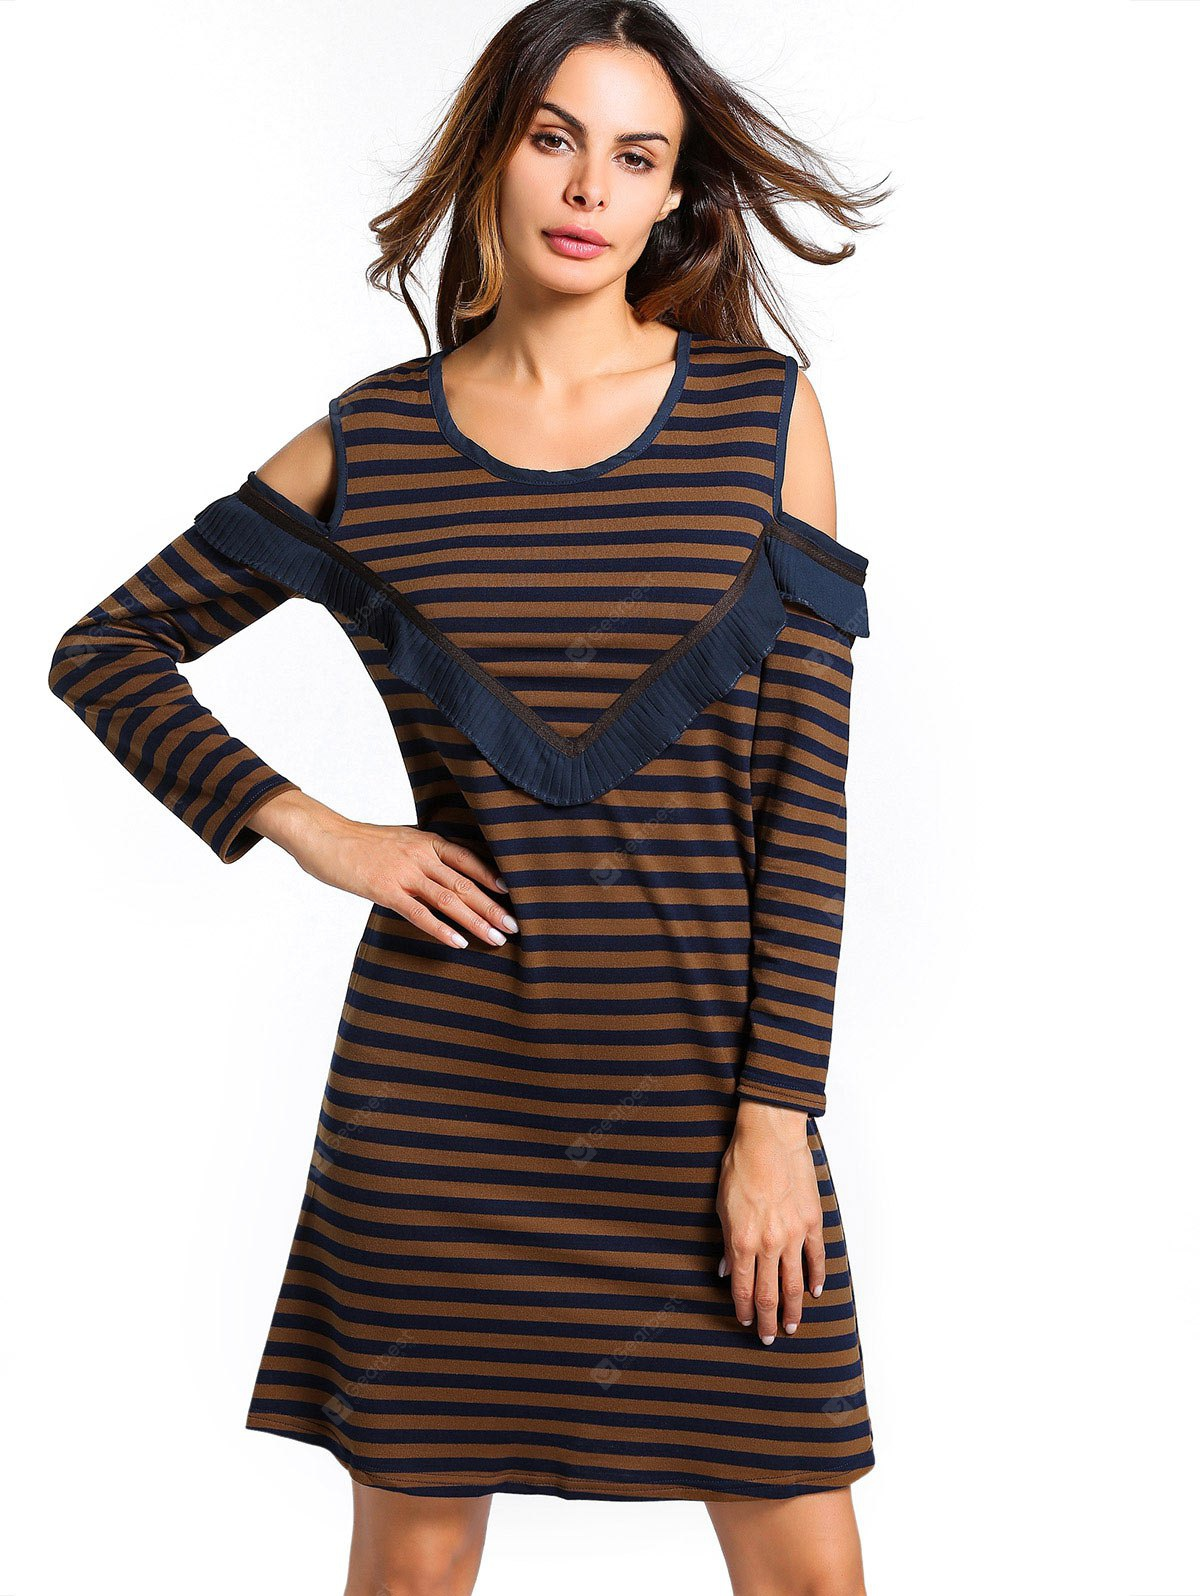 U Neck Open Shoulder Striped Dress